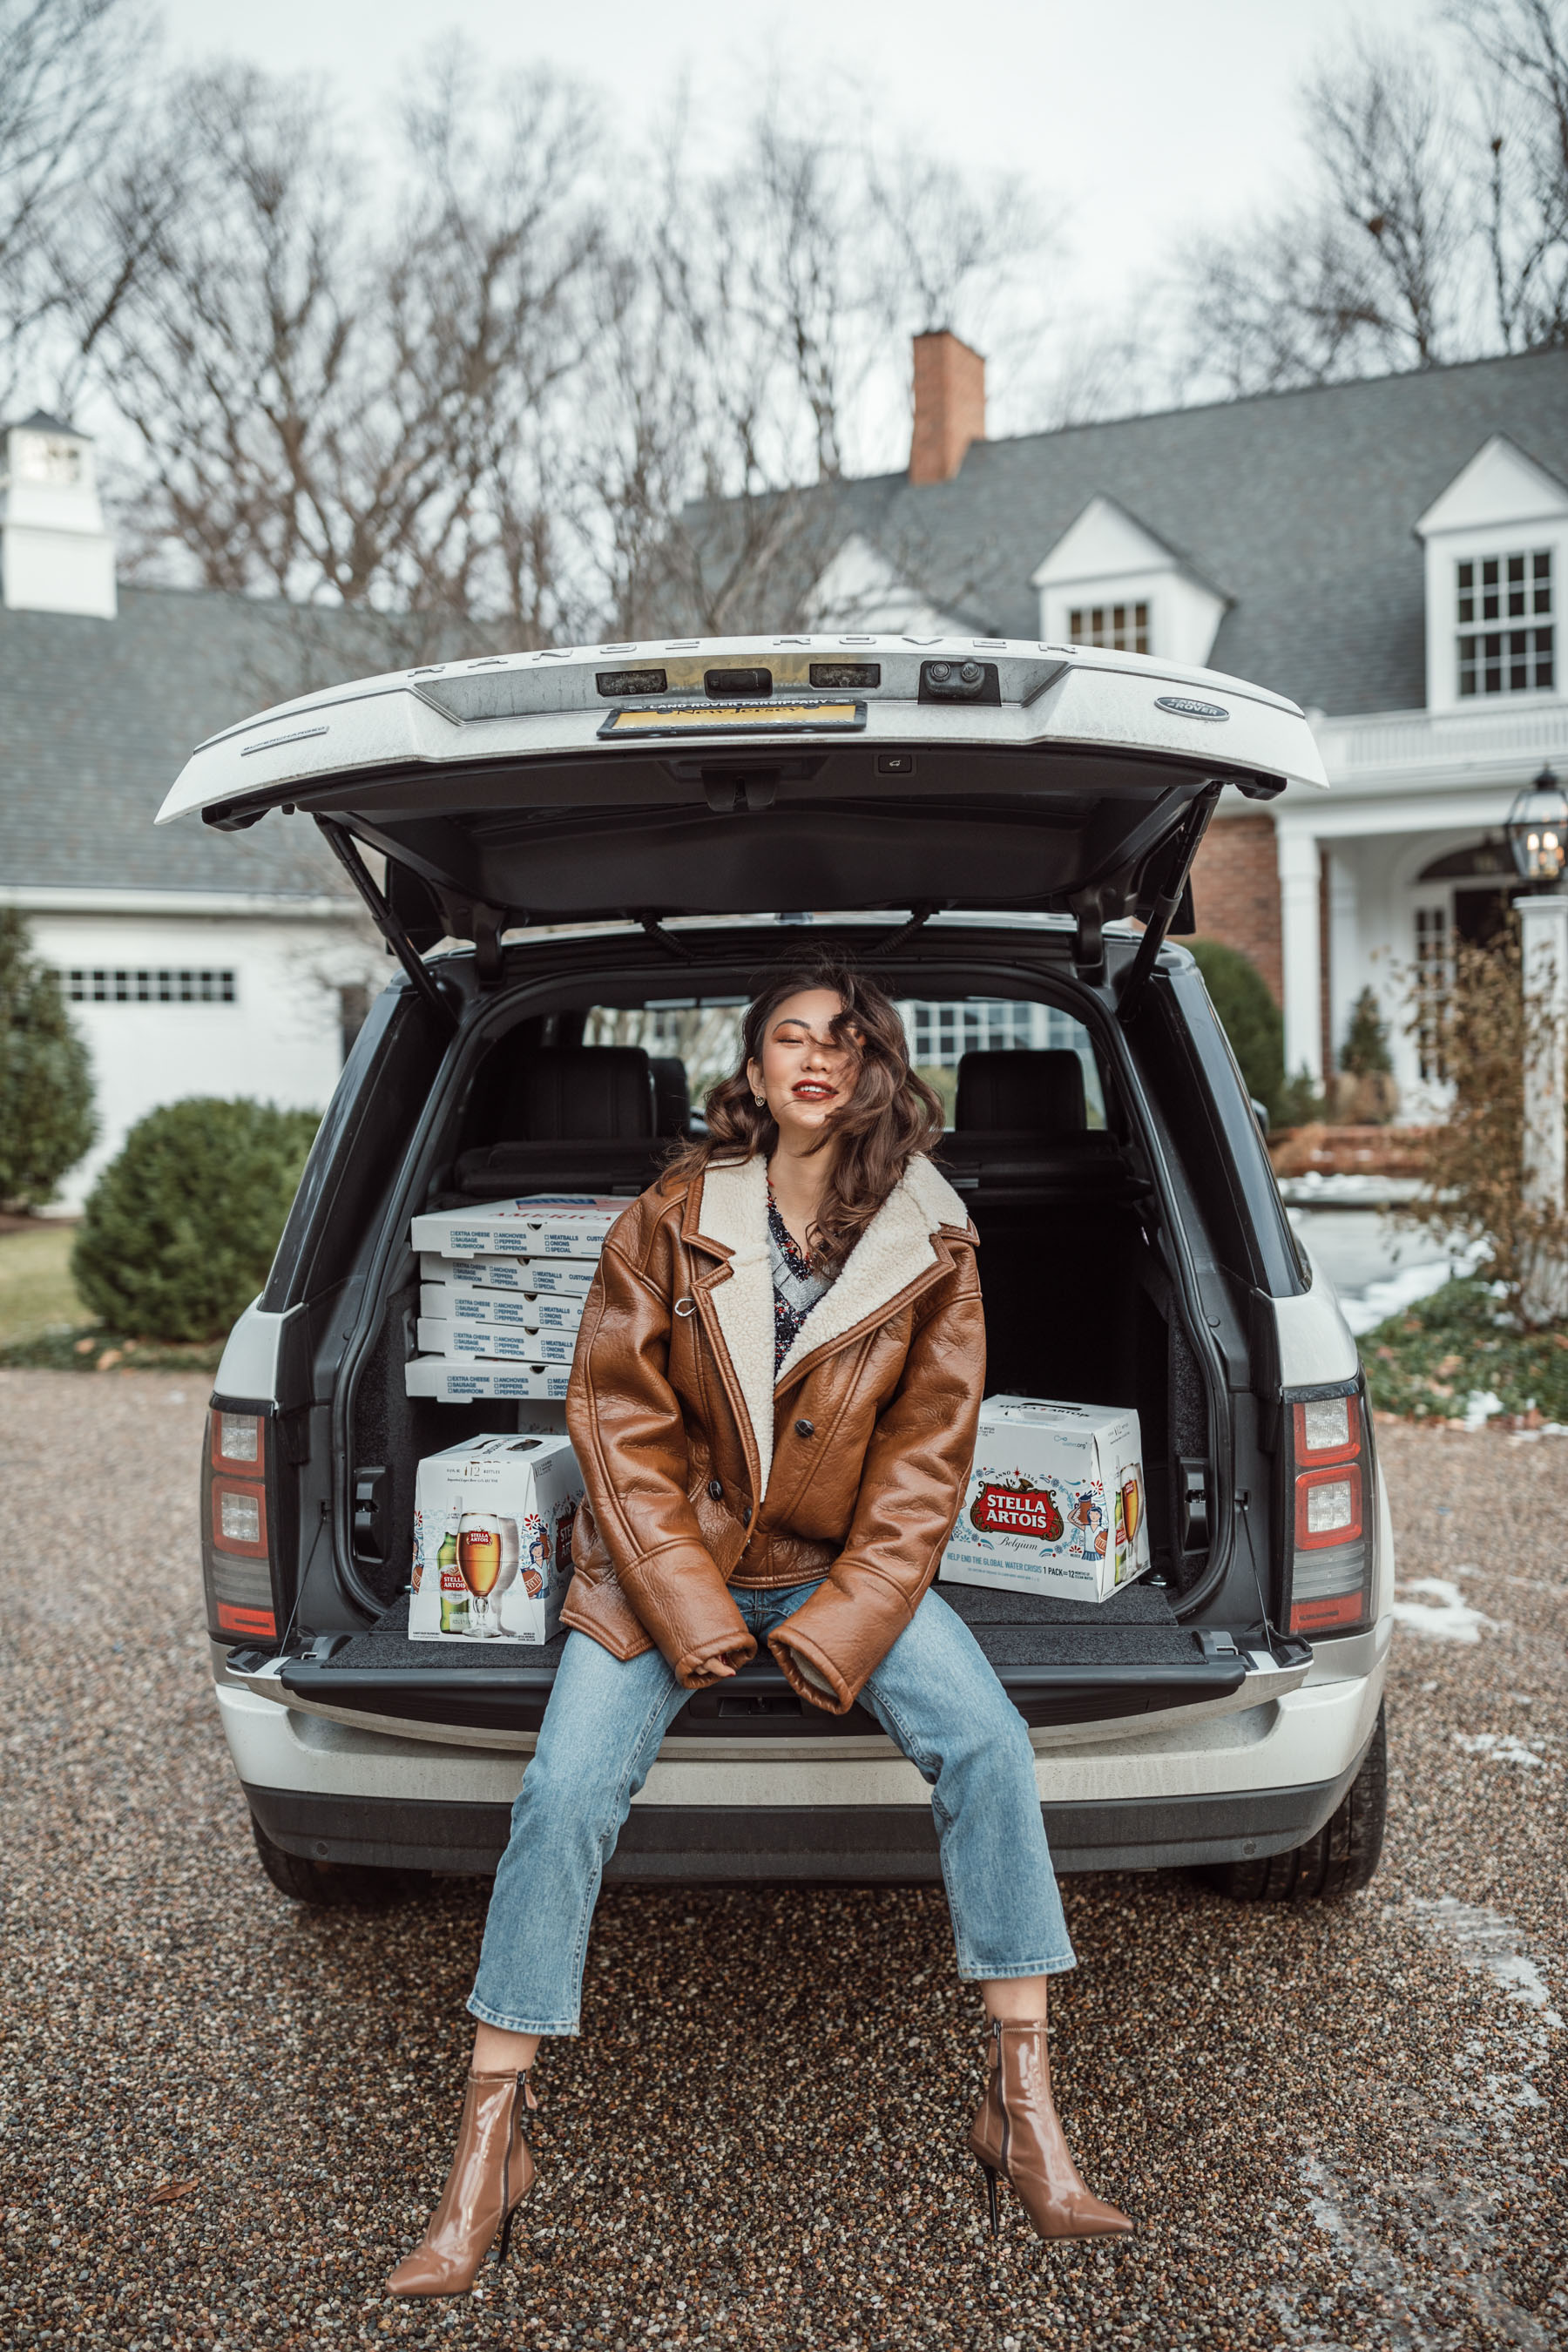 How to Throw a Super Bowl Party That Matters // Notjessfashion // Stella Artois, Super Bowl Party, fashion blogger, new york fashion blogger, jessica wang